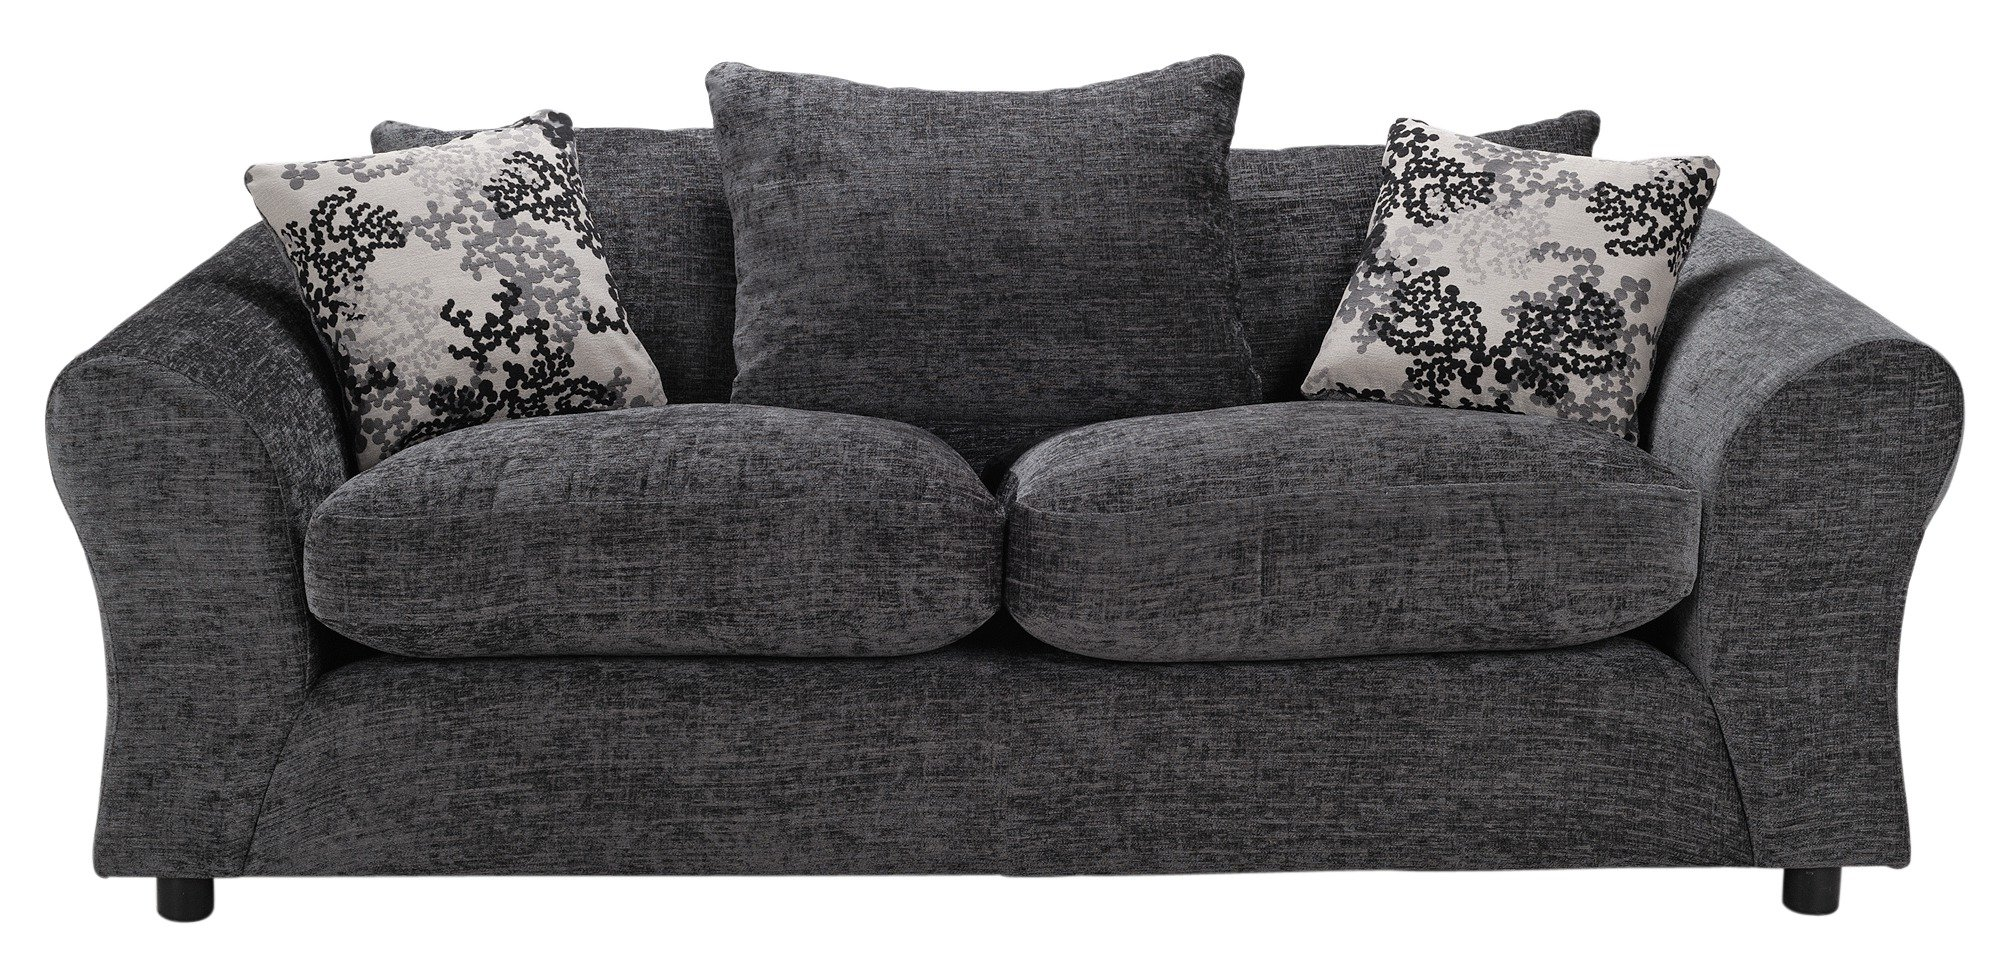 Sale On Argos Home New Clara Large And Regular Fabric